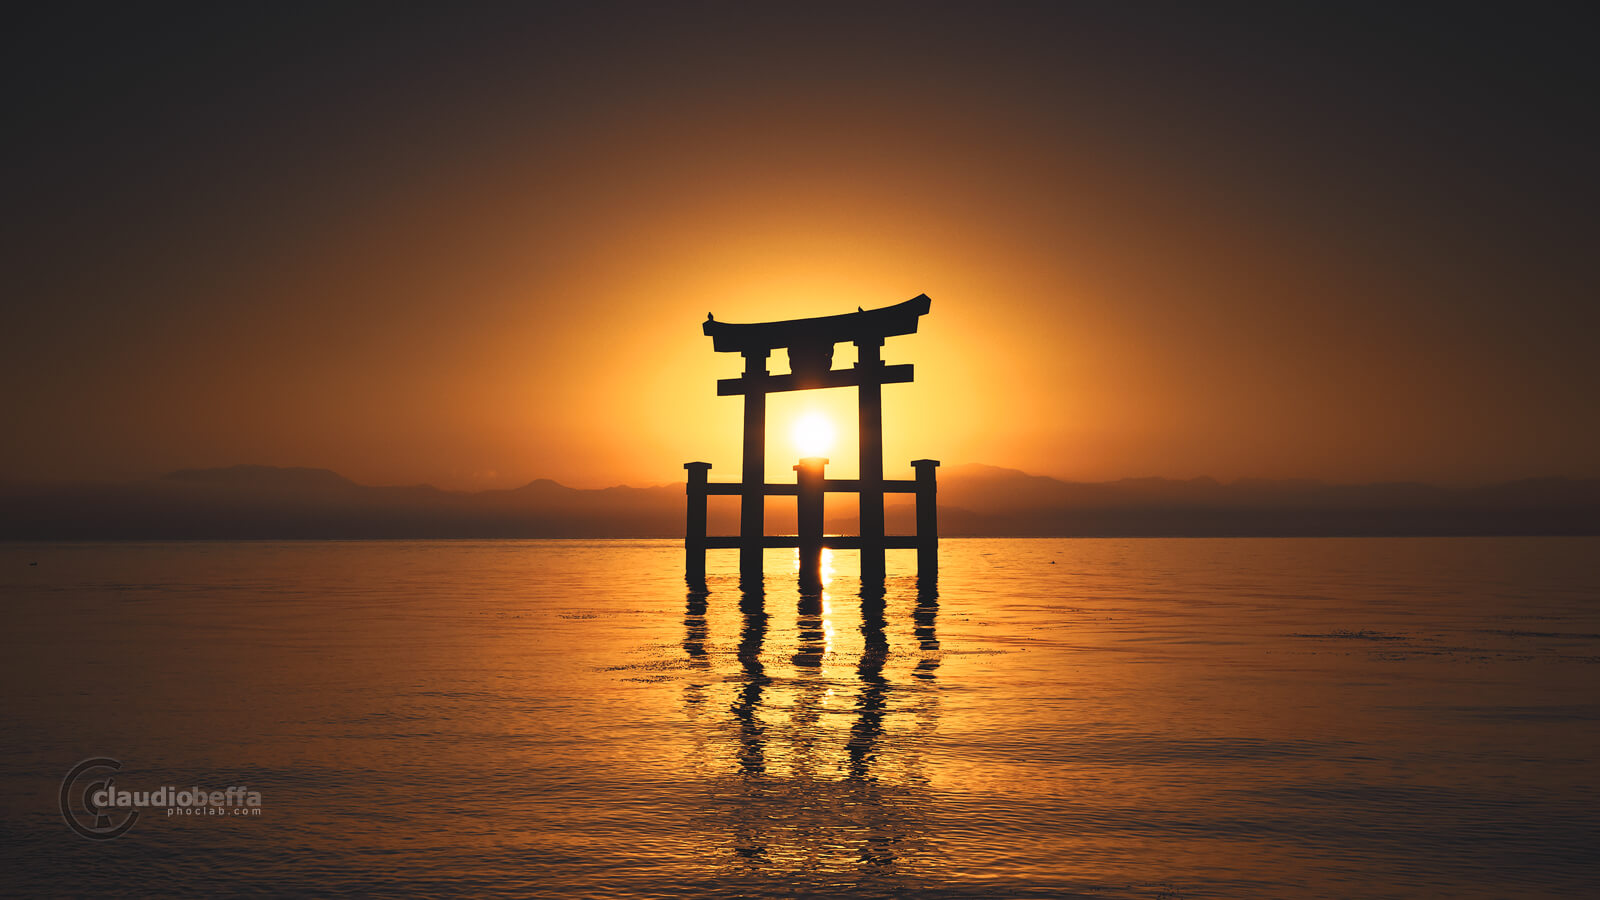 Threshold of Earth, Gate, Torii, Shinto, Sunrise, Sun, Light, Water, Reflections